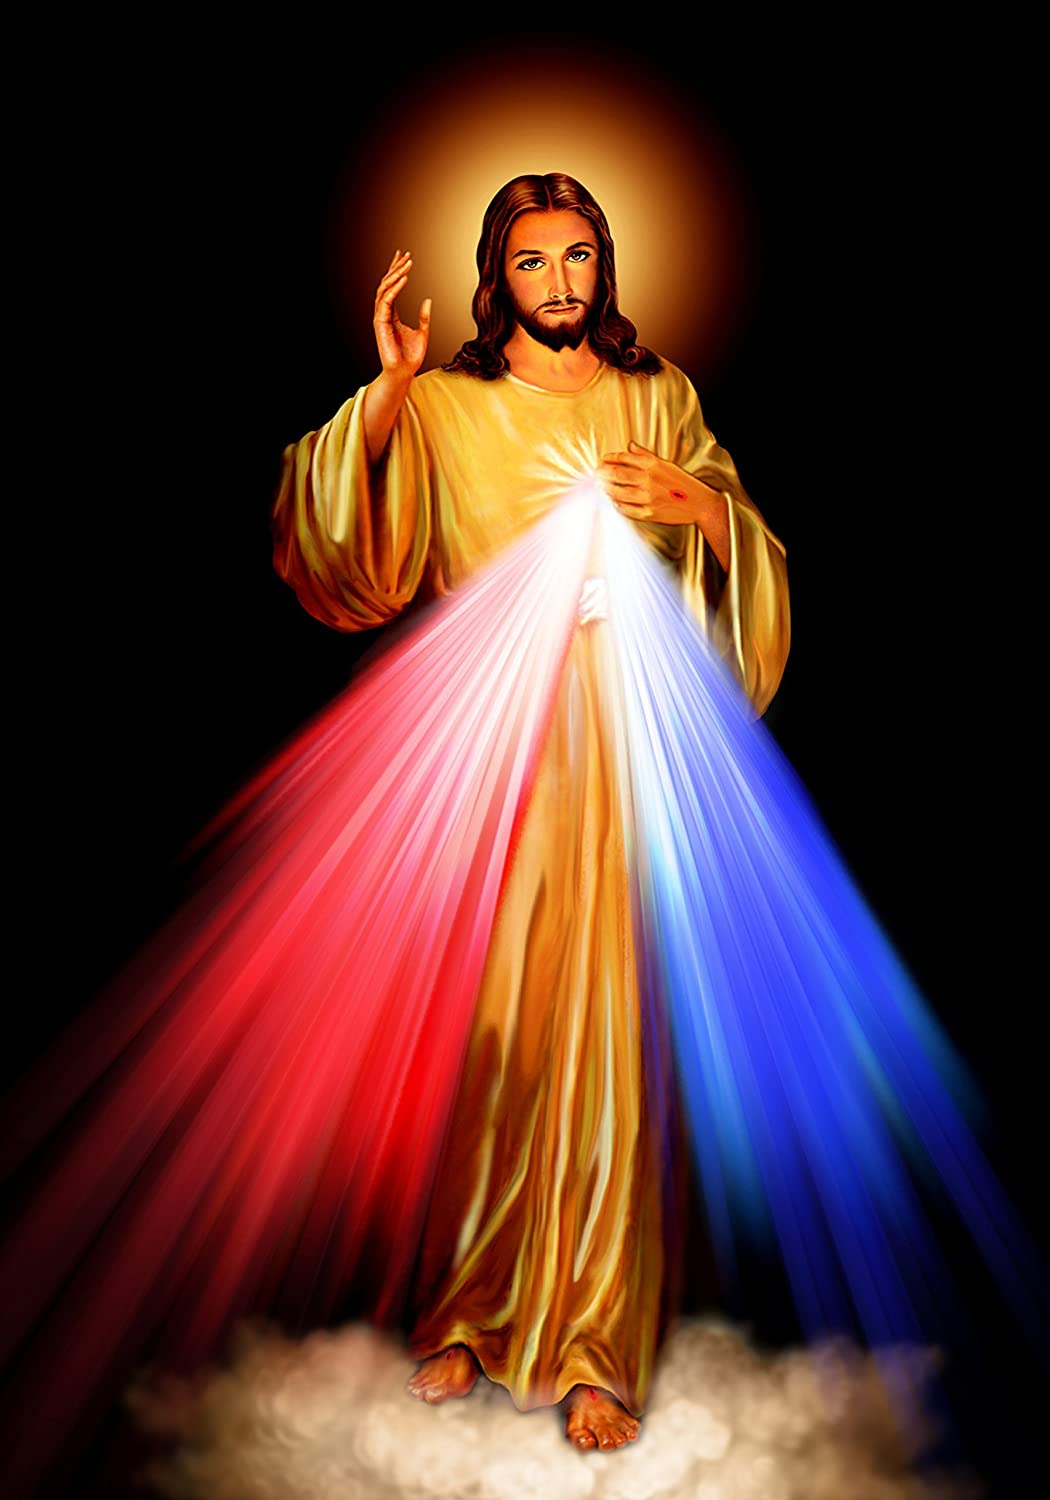 Amazon Com Divine Mercy Jesus Christ Poster A2 Print Roman Catholic Pictures Images Sacred Heart Of Jesus Painting Religious Christian Holy Wall Art Decor For Home Handmade Prepare for the first week of come, follow me 2021 here. divine mercy jesus christ poster a2 print roman catholic pictures images sacred heart of jesus painting religious christian holy wall art decor for